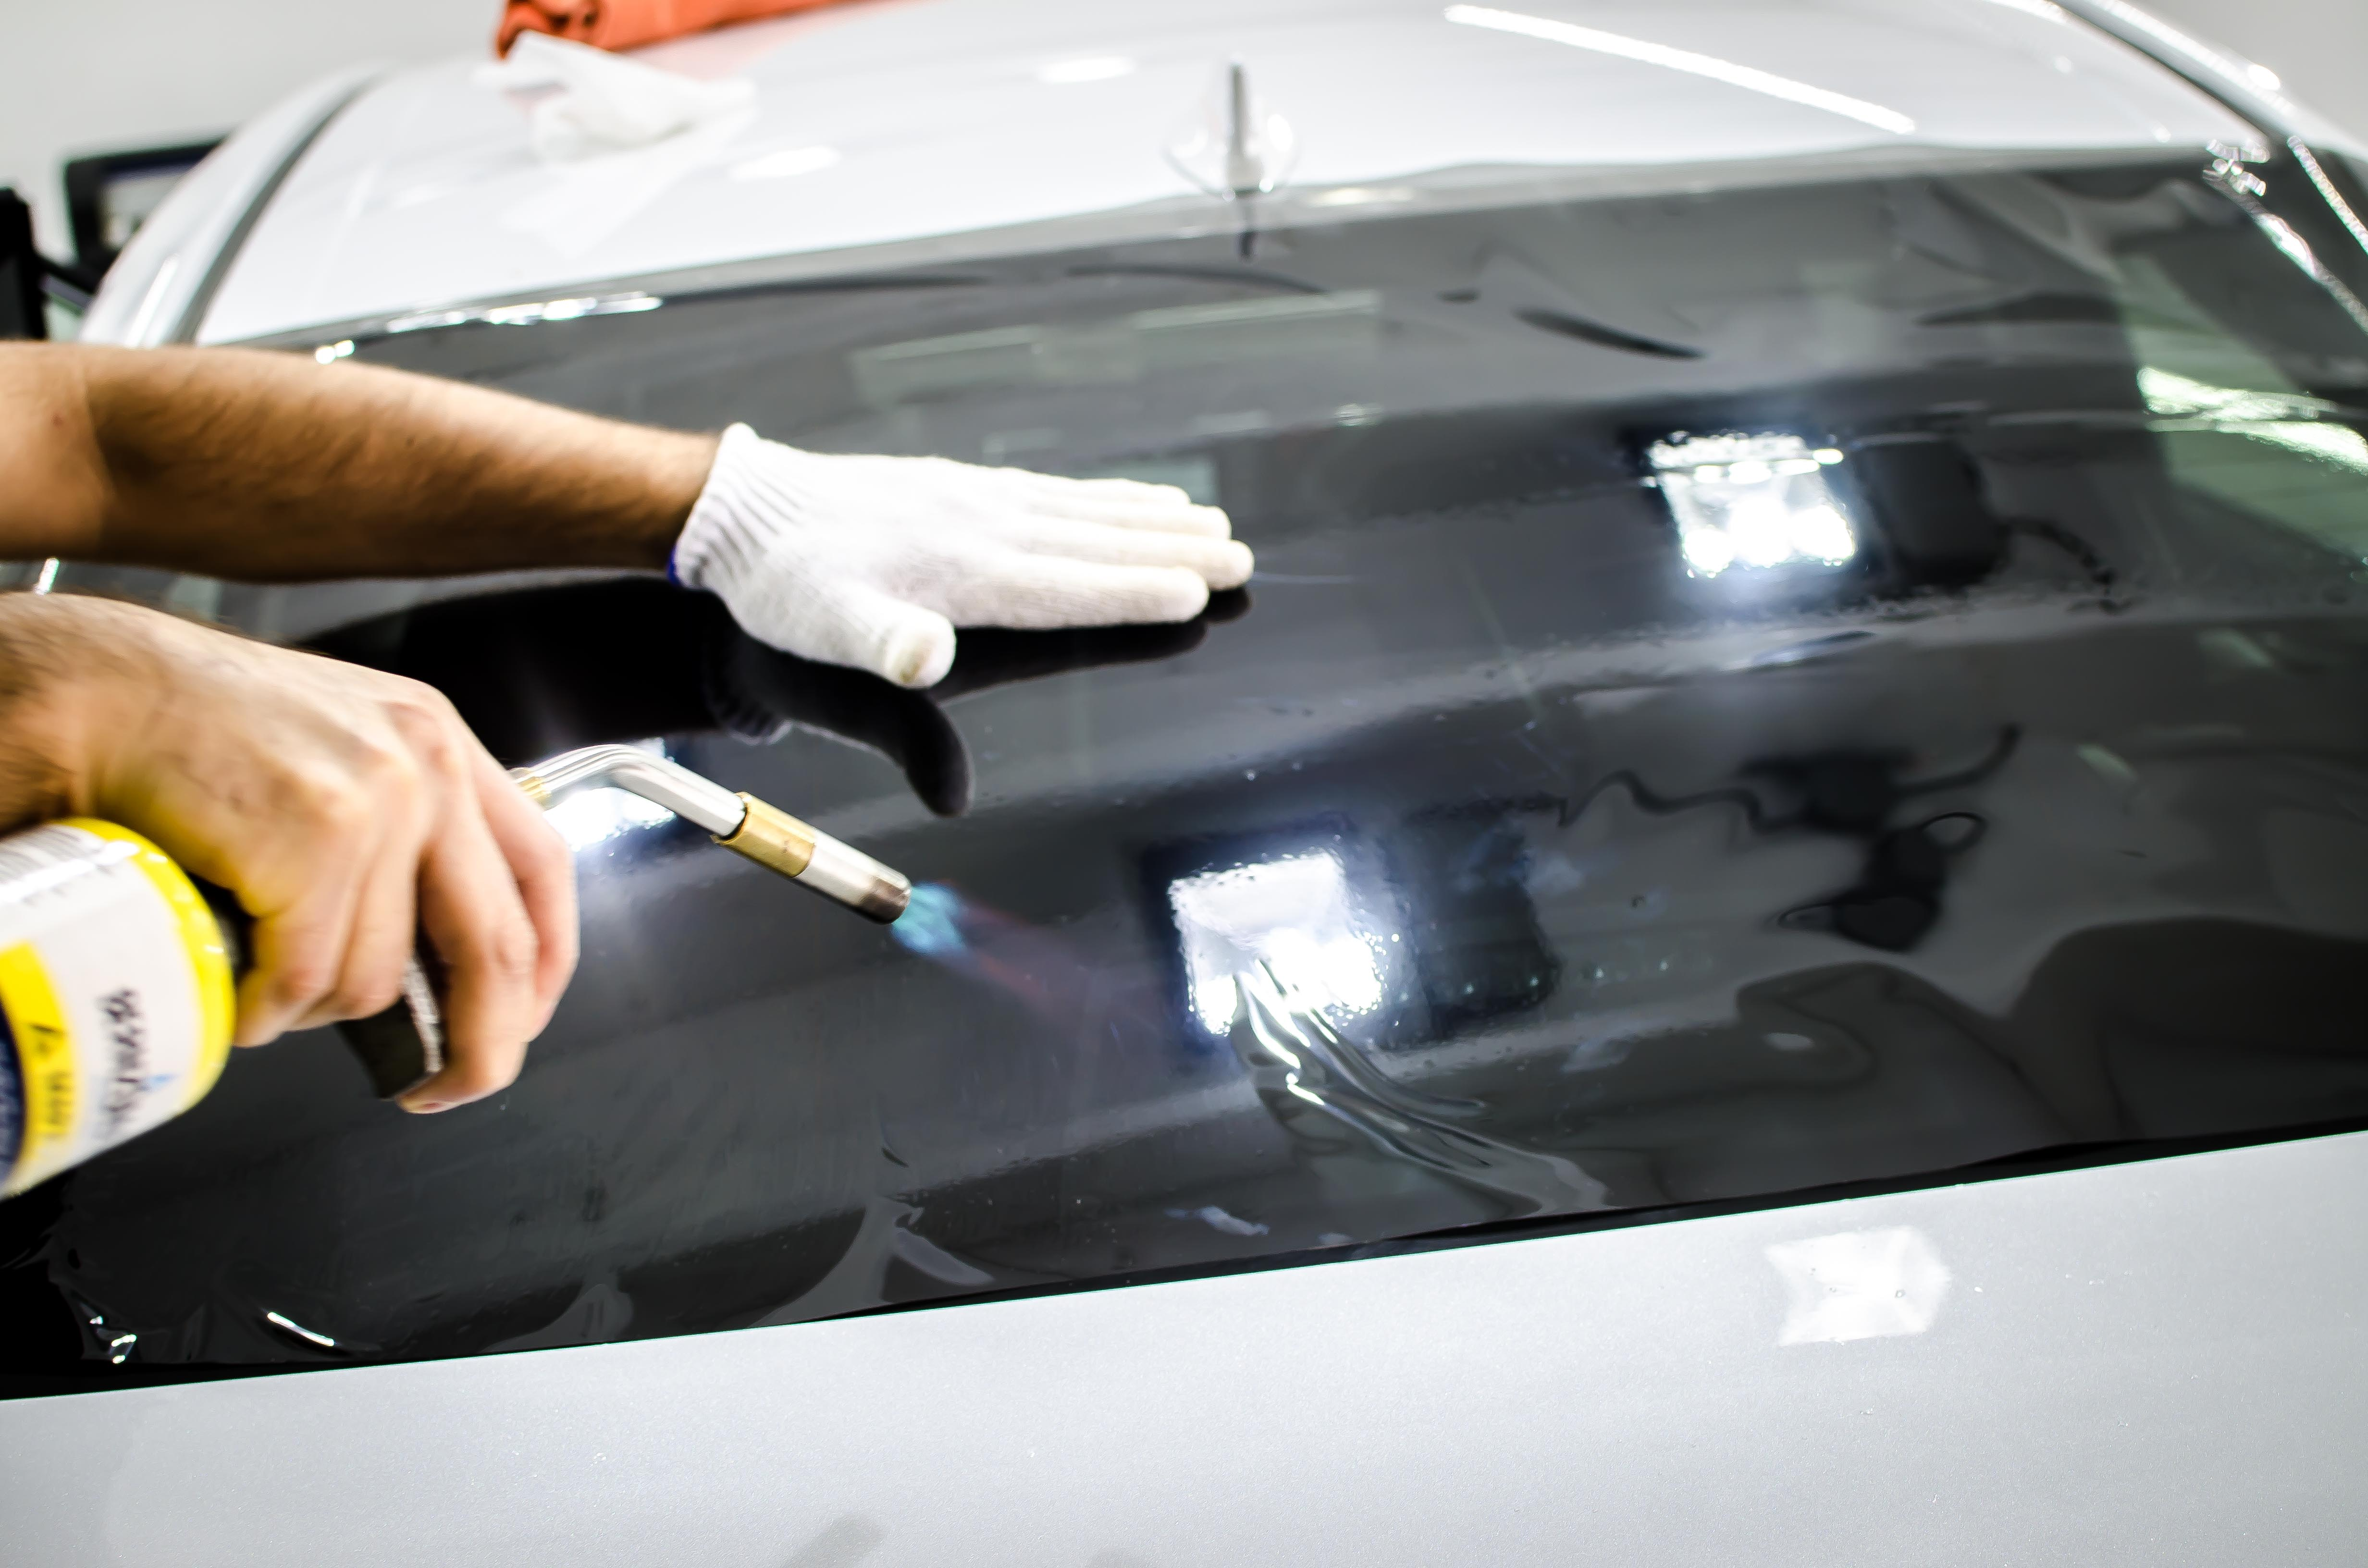 best-paint-protection-film-ceramic-coating-houston-texas-xpel-3m-suntek-modesta-cquartz-